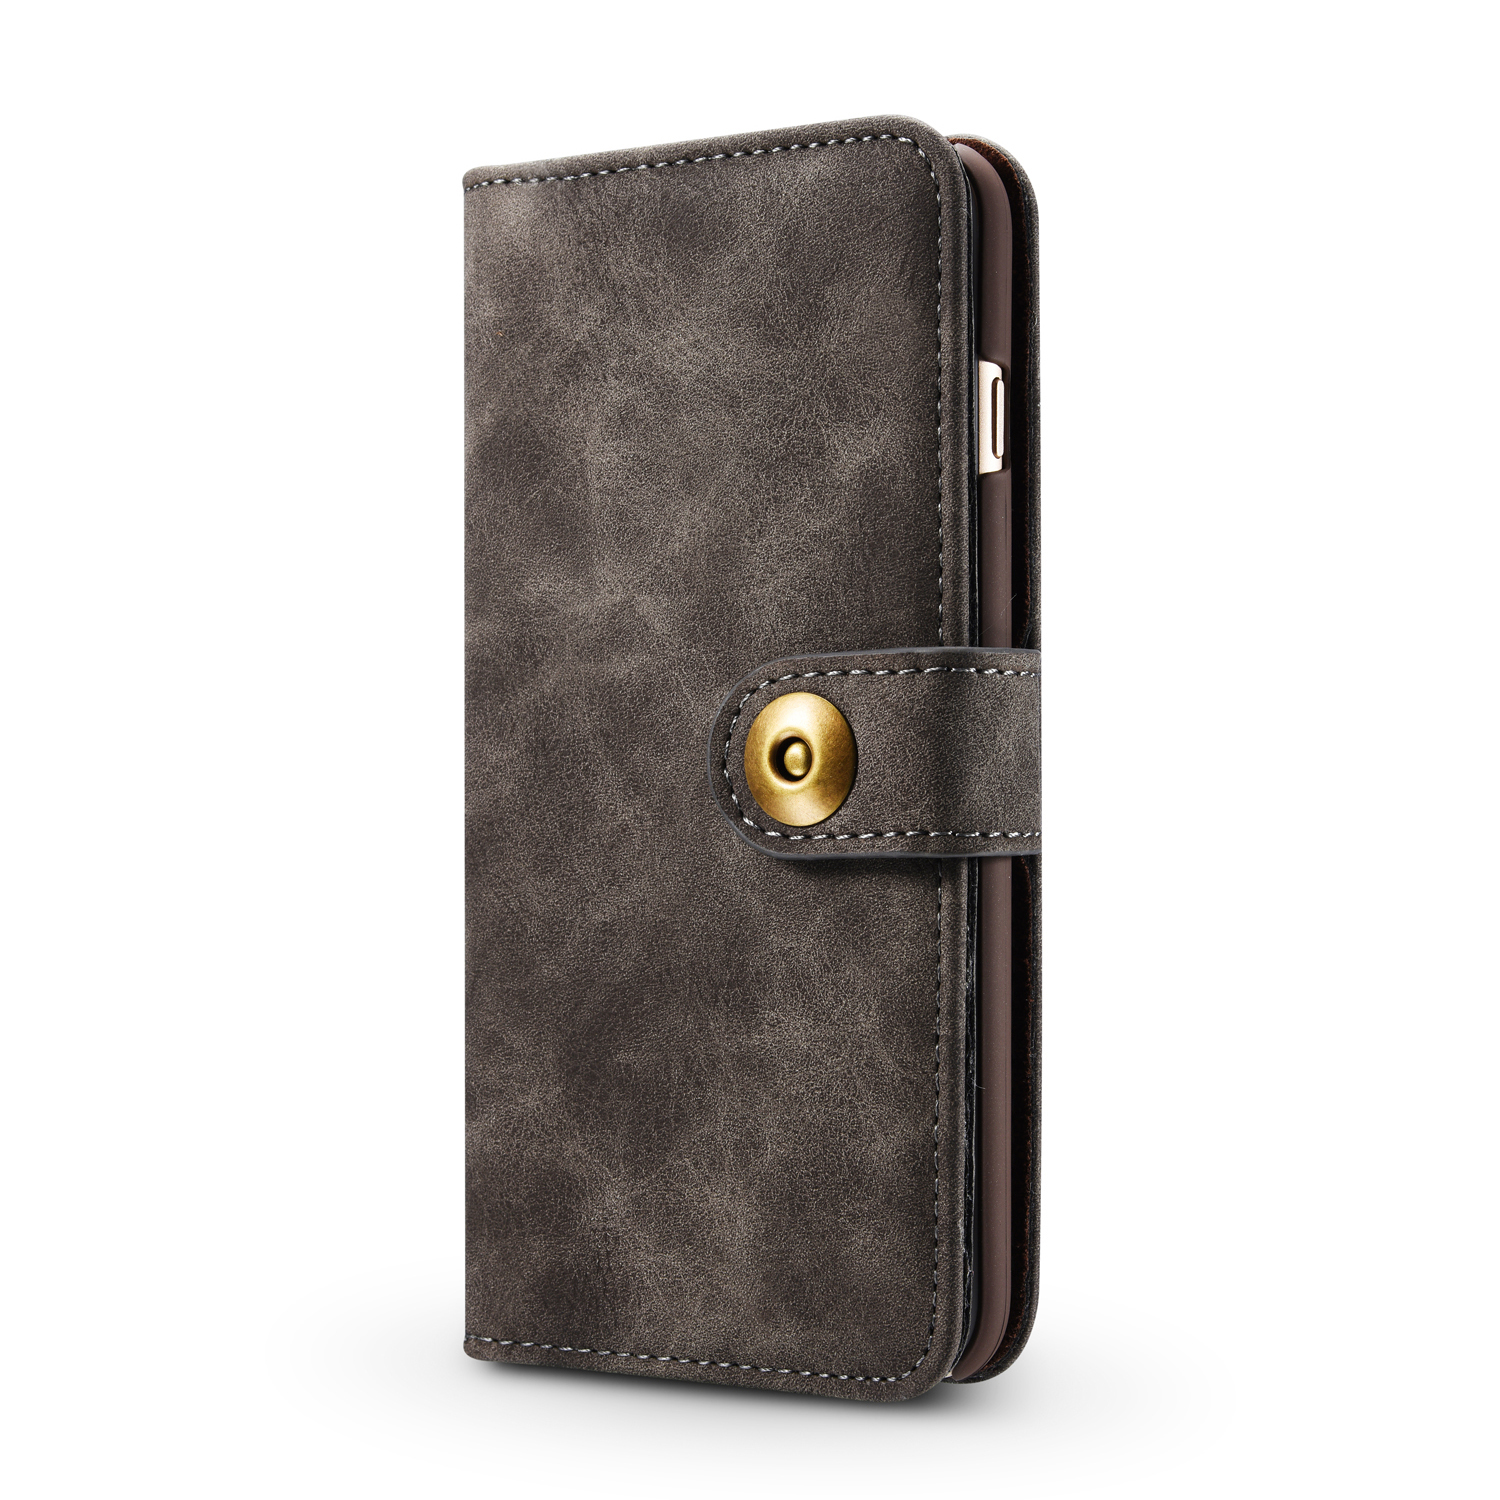 Jaorty PU Leather Wallet Case for iPhone 6//6S Necklace Lanyard Case Cover with Card Holder Adjustable Detachable Anti-Lost Neck Strap for 4.7 inch Apple iPhone 6 iPhone 6S,Gold